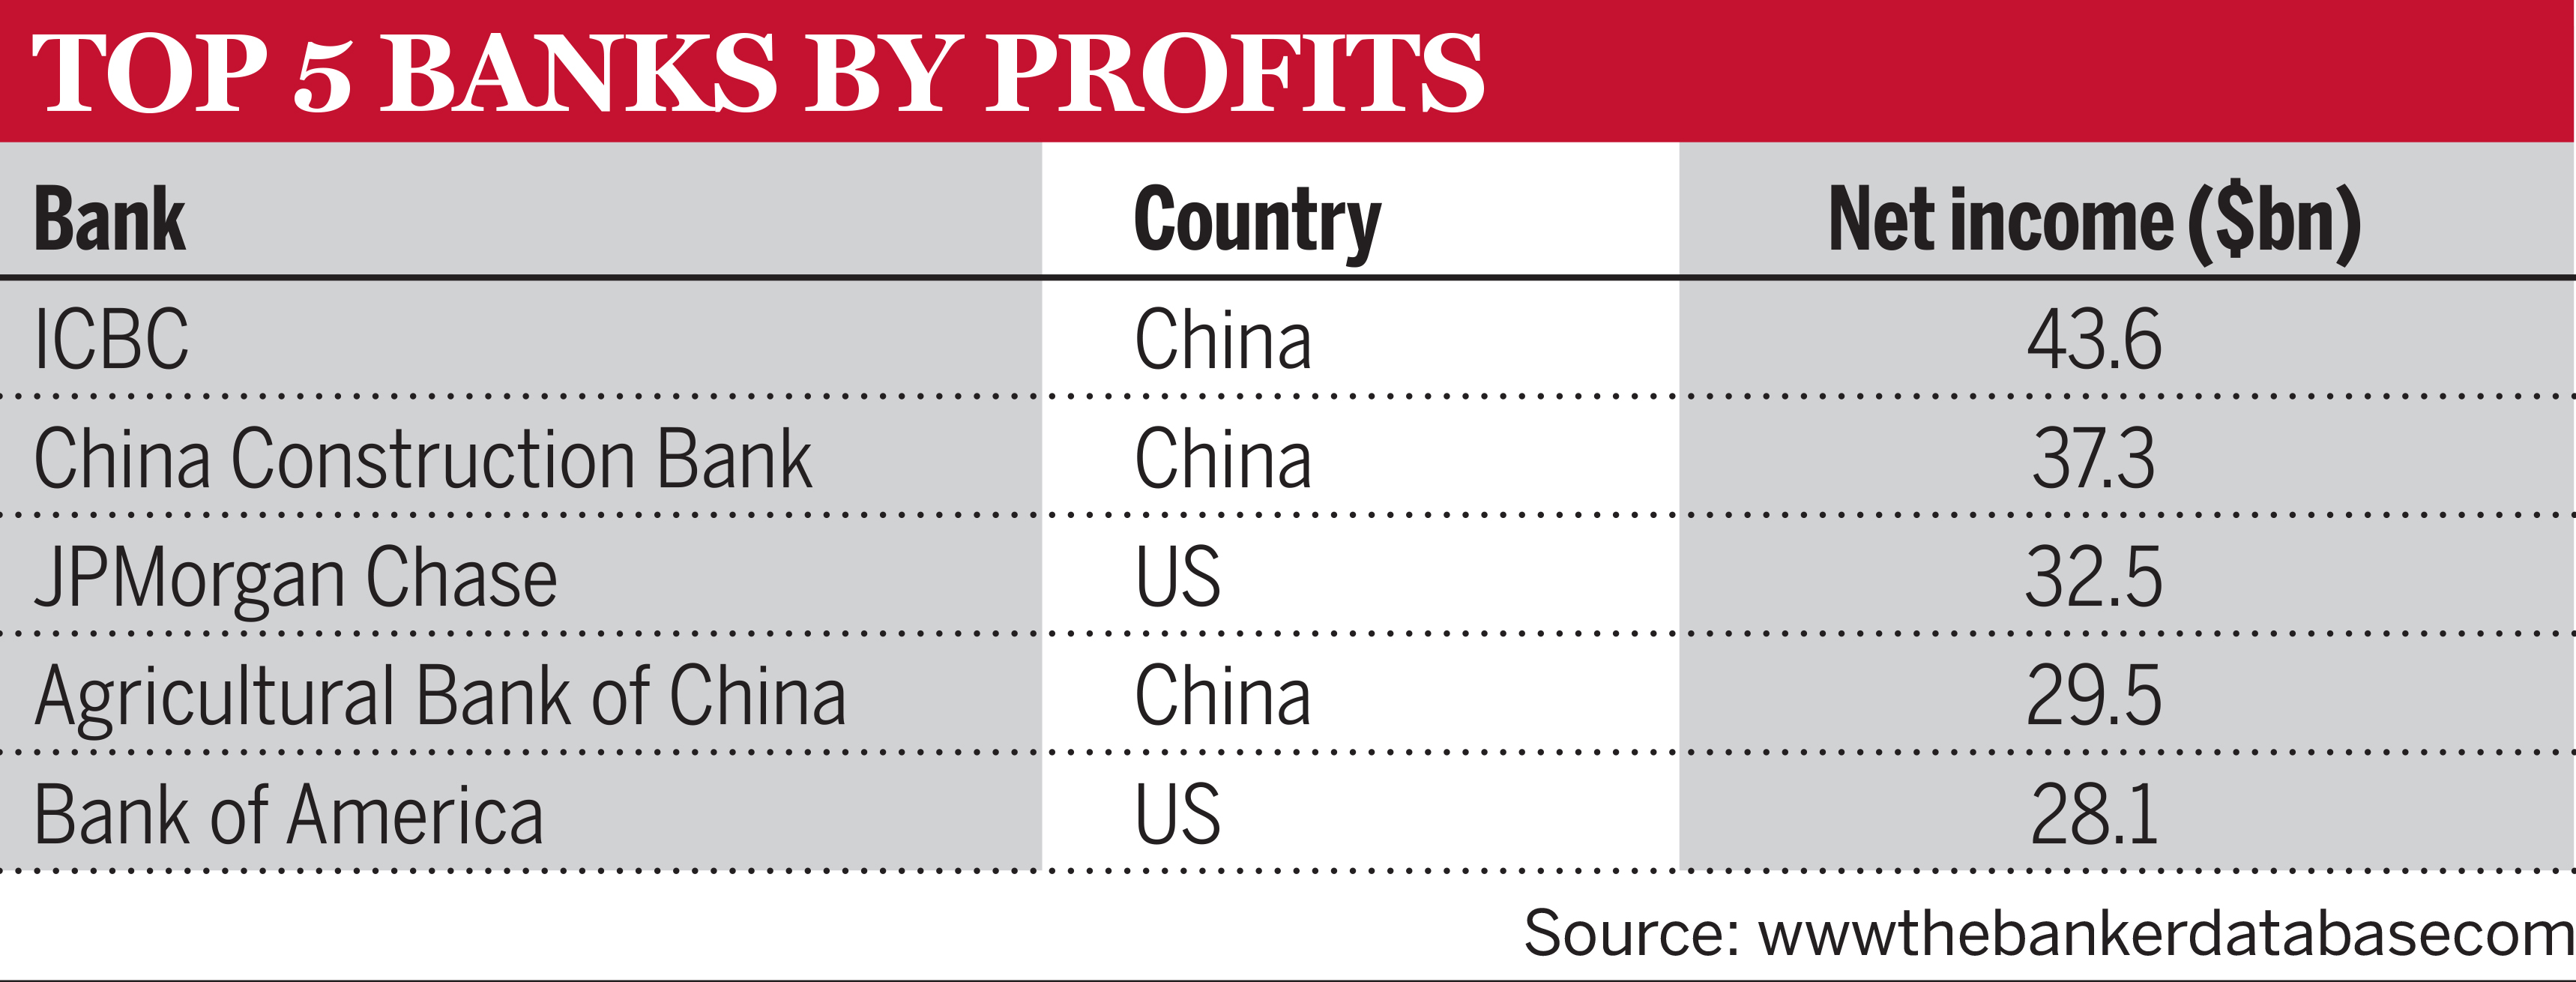 Top 5 Banks by Profits